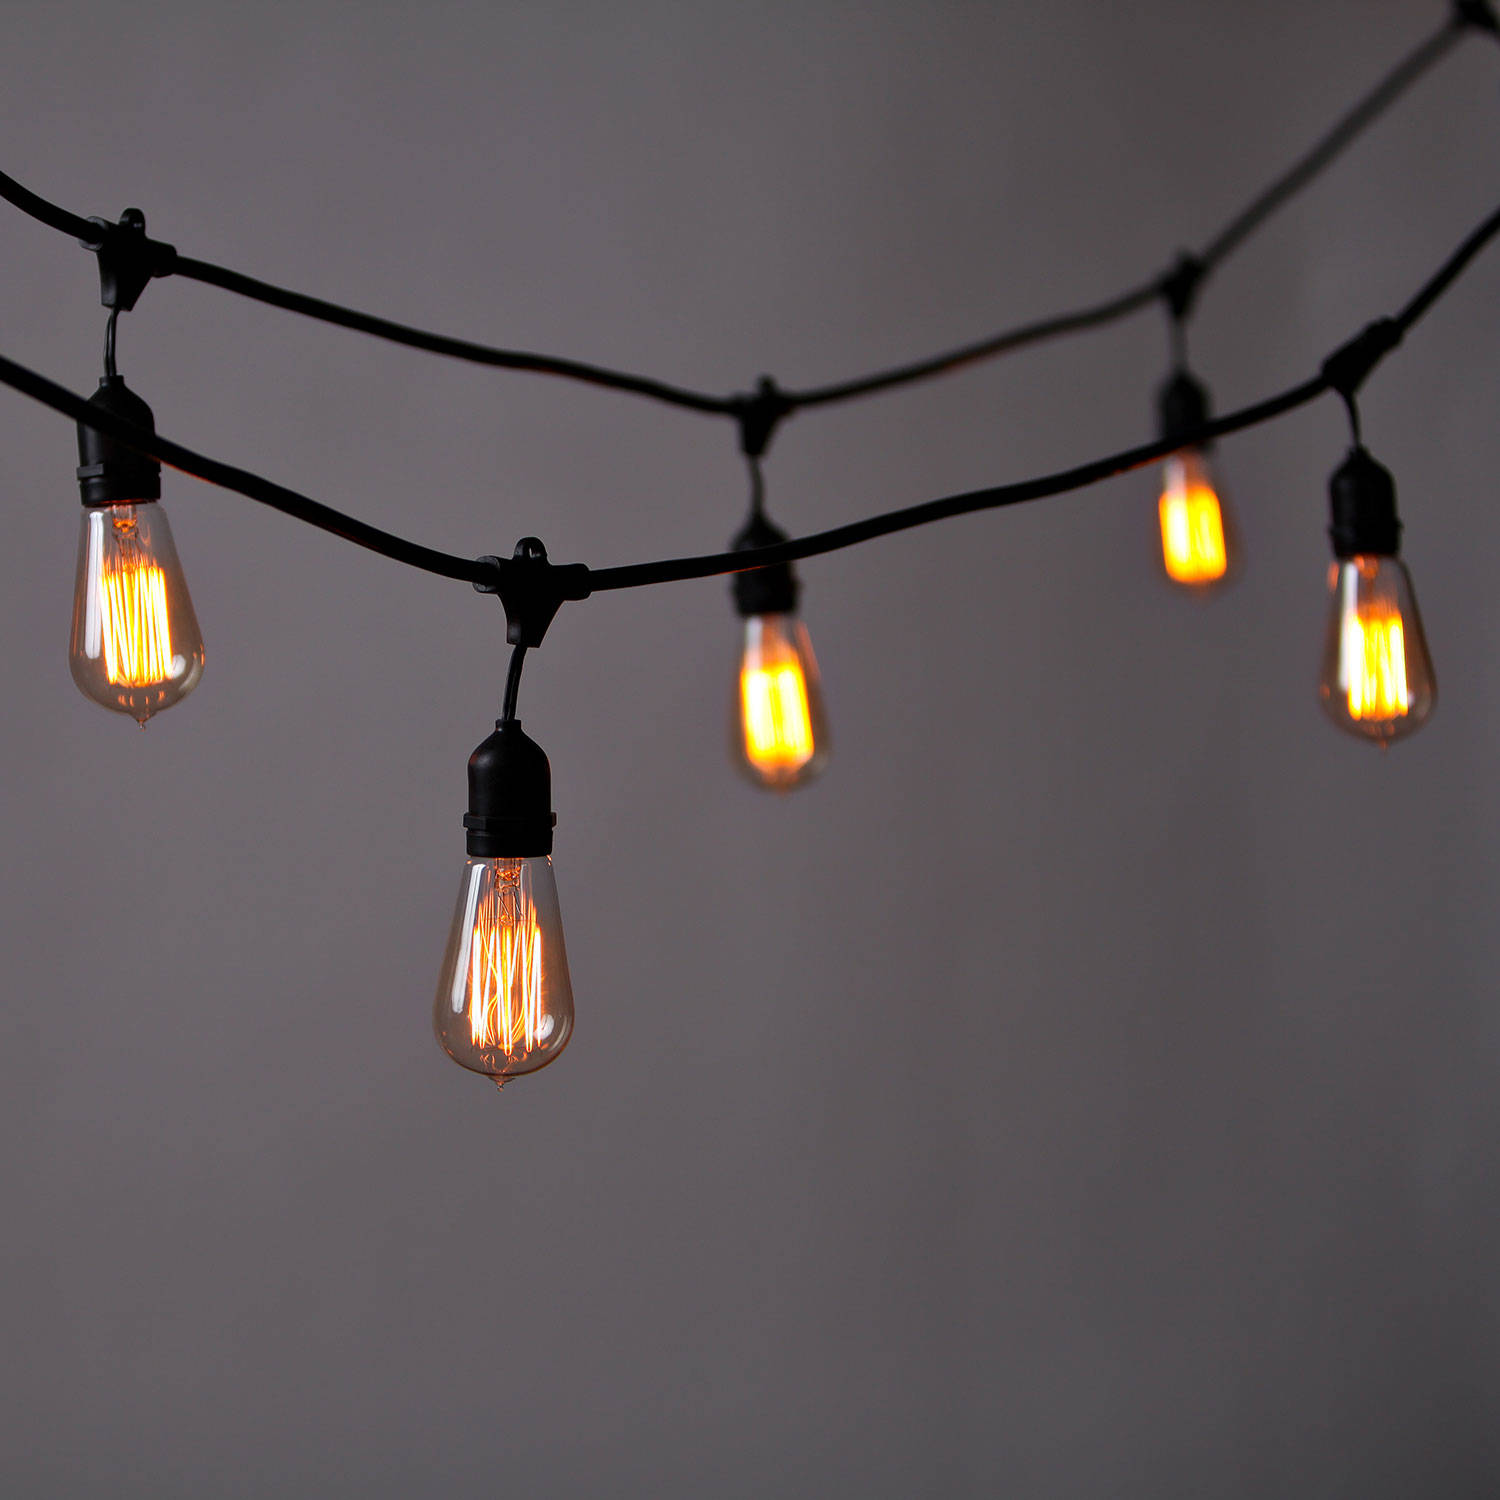 Vintage String Lights With Bulbs - Vintage String Lights Bulbs Not Included Commercial Grade ...